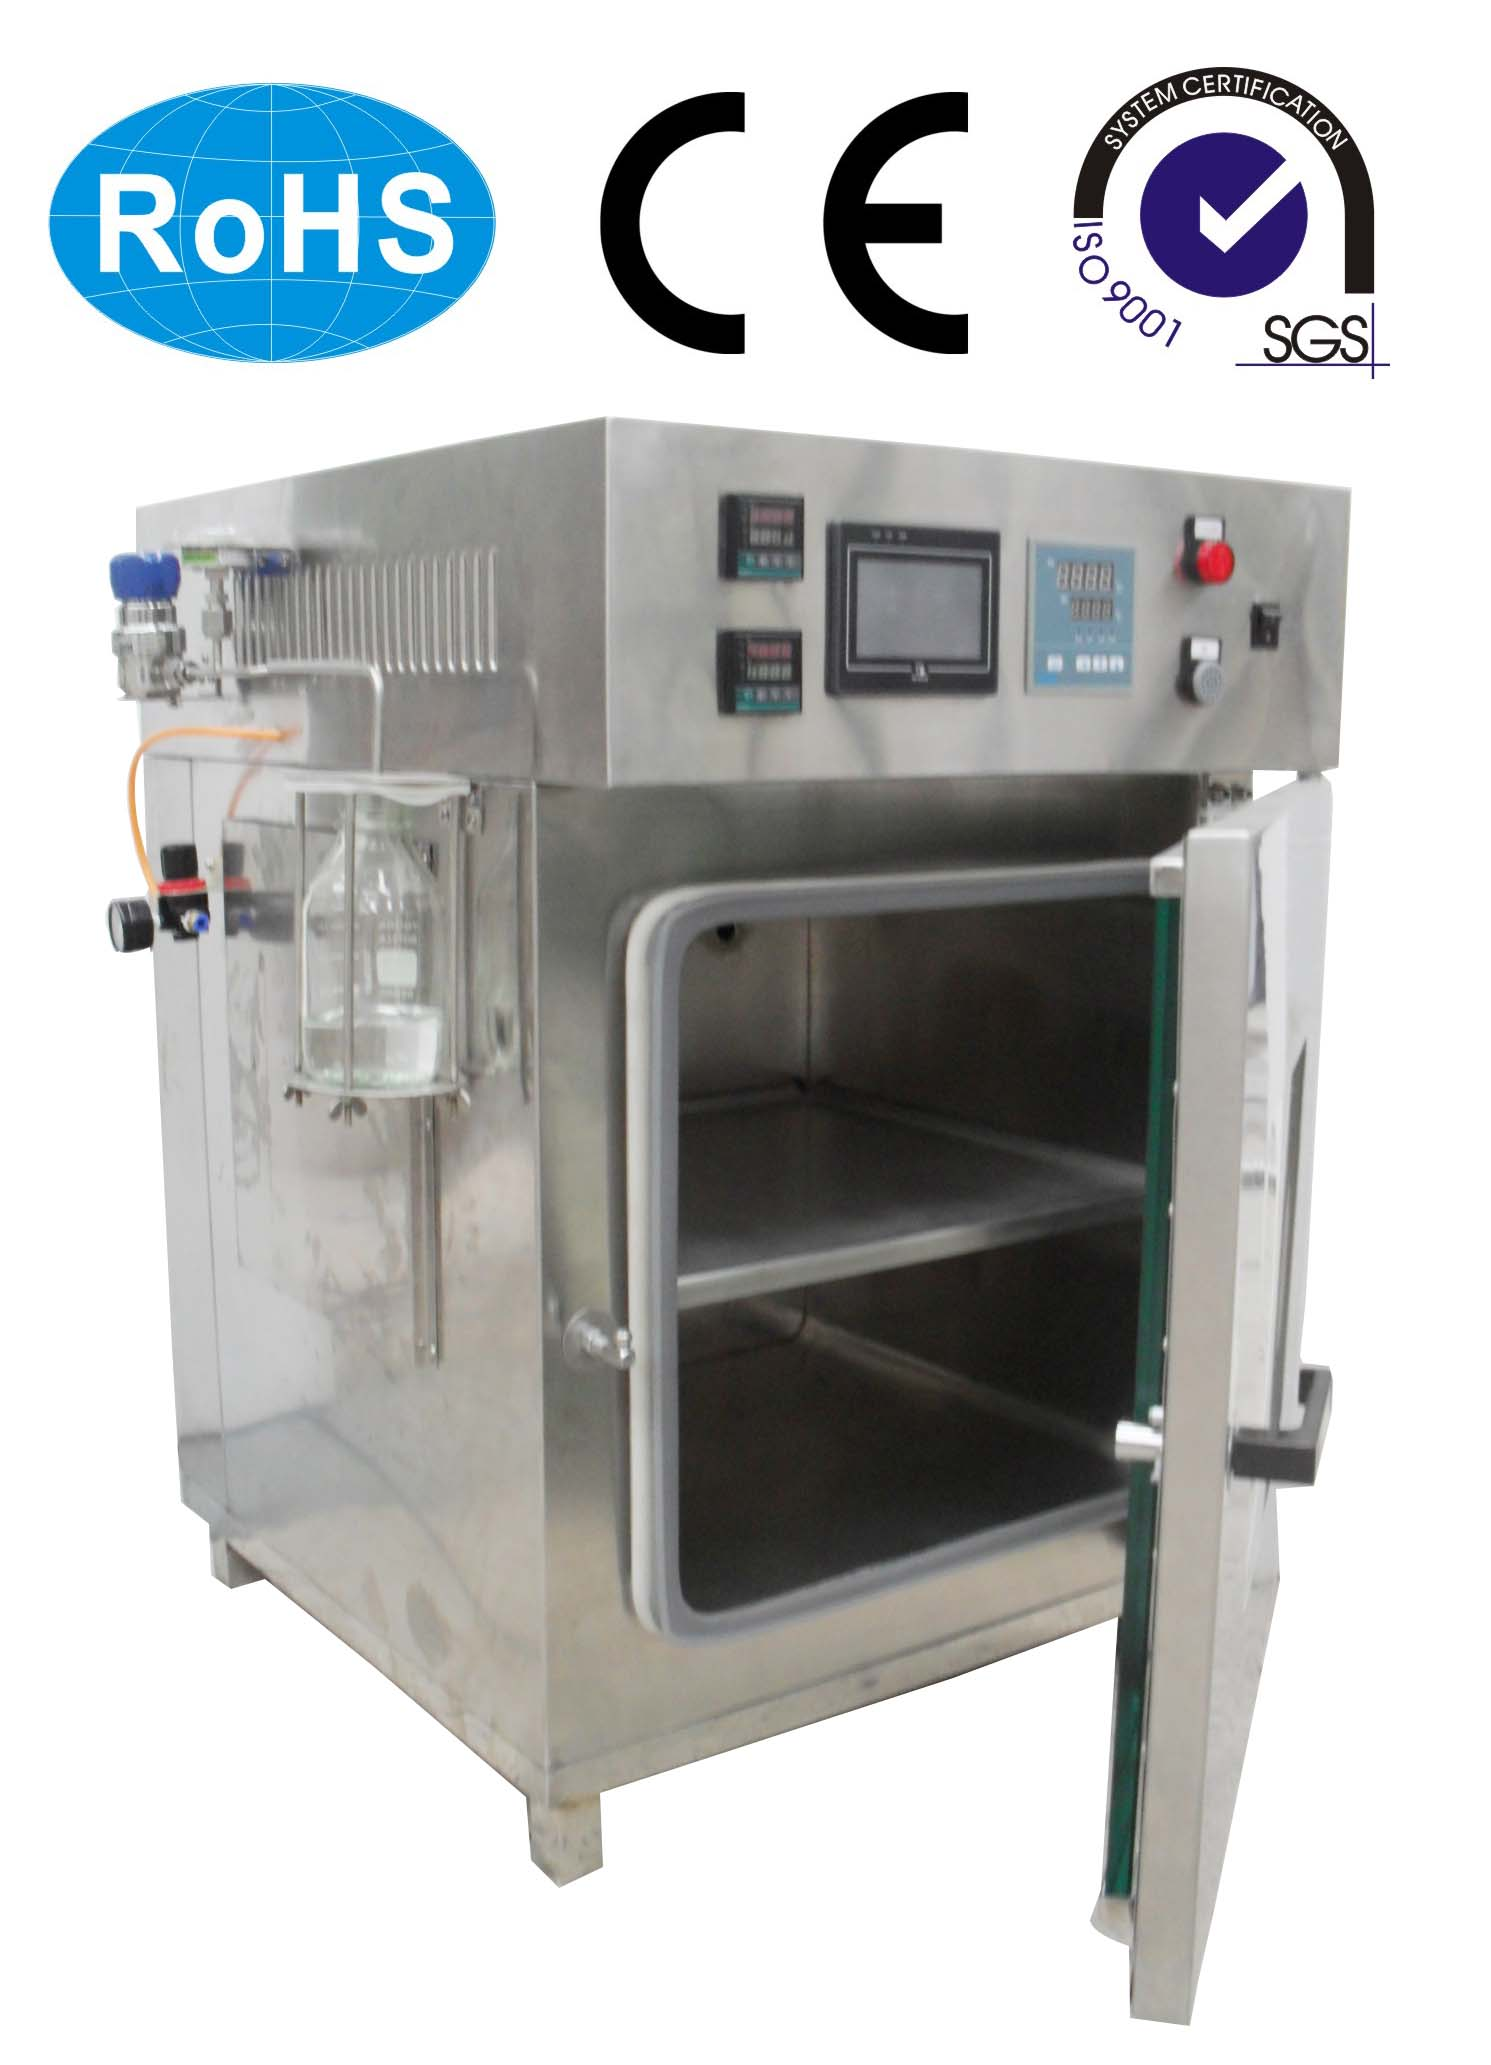 HMDS-6090 HMDS pretreatment system